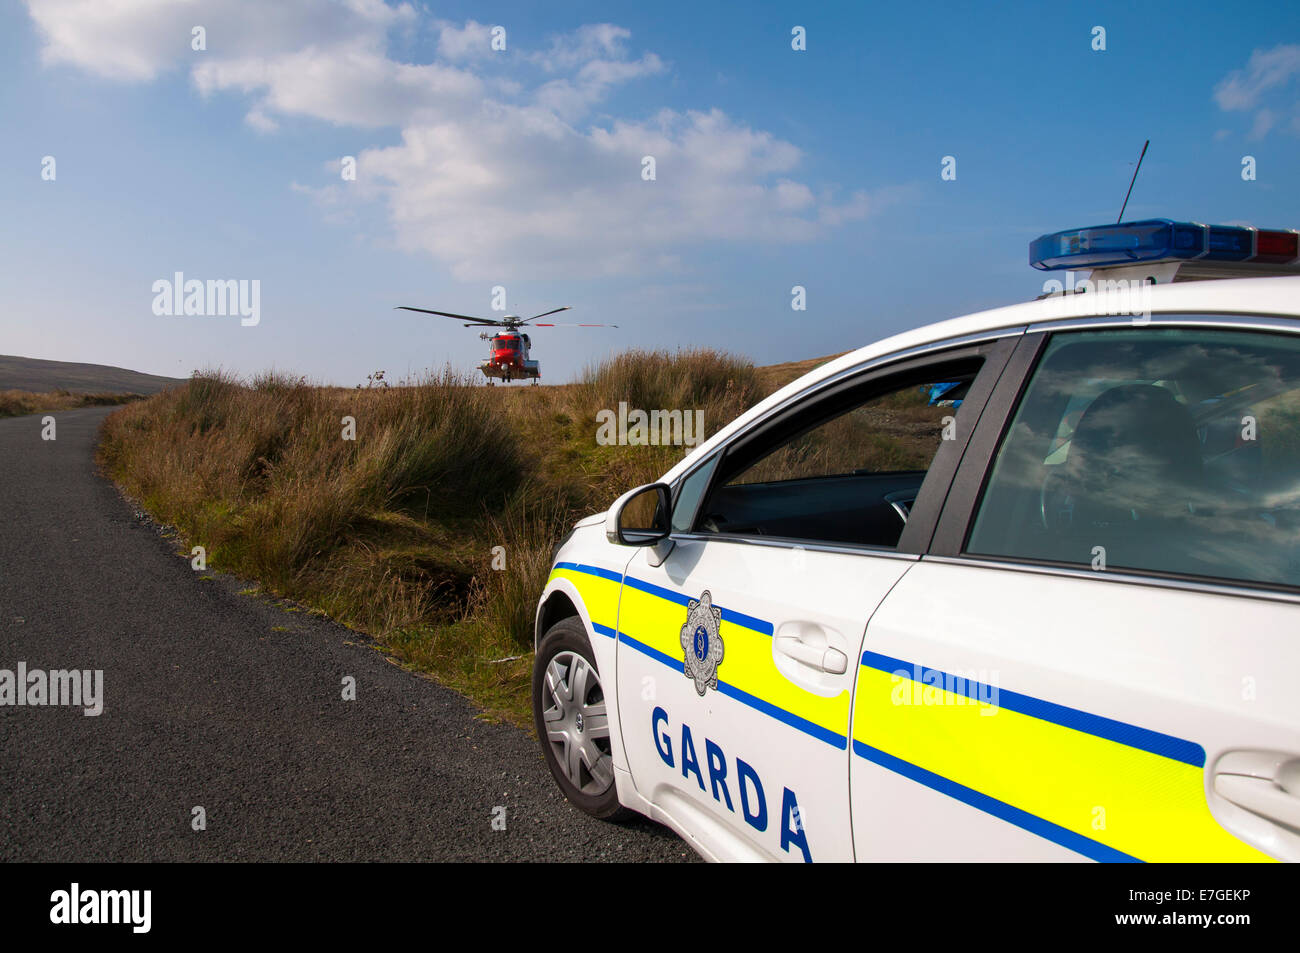 Irish Coast Guard IRCG  Garda Cósta na hÉireann Sikorsky helicopter flies above an Irish police car during a medical Stock Photo